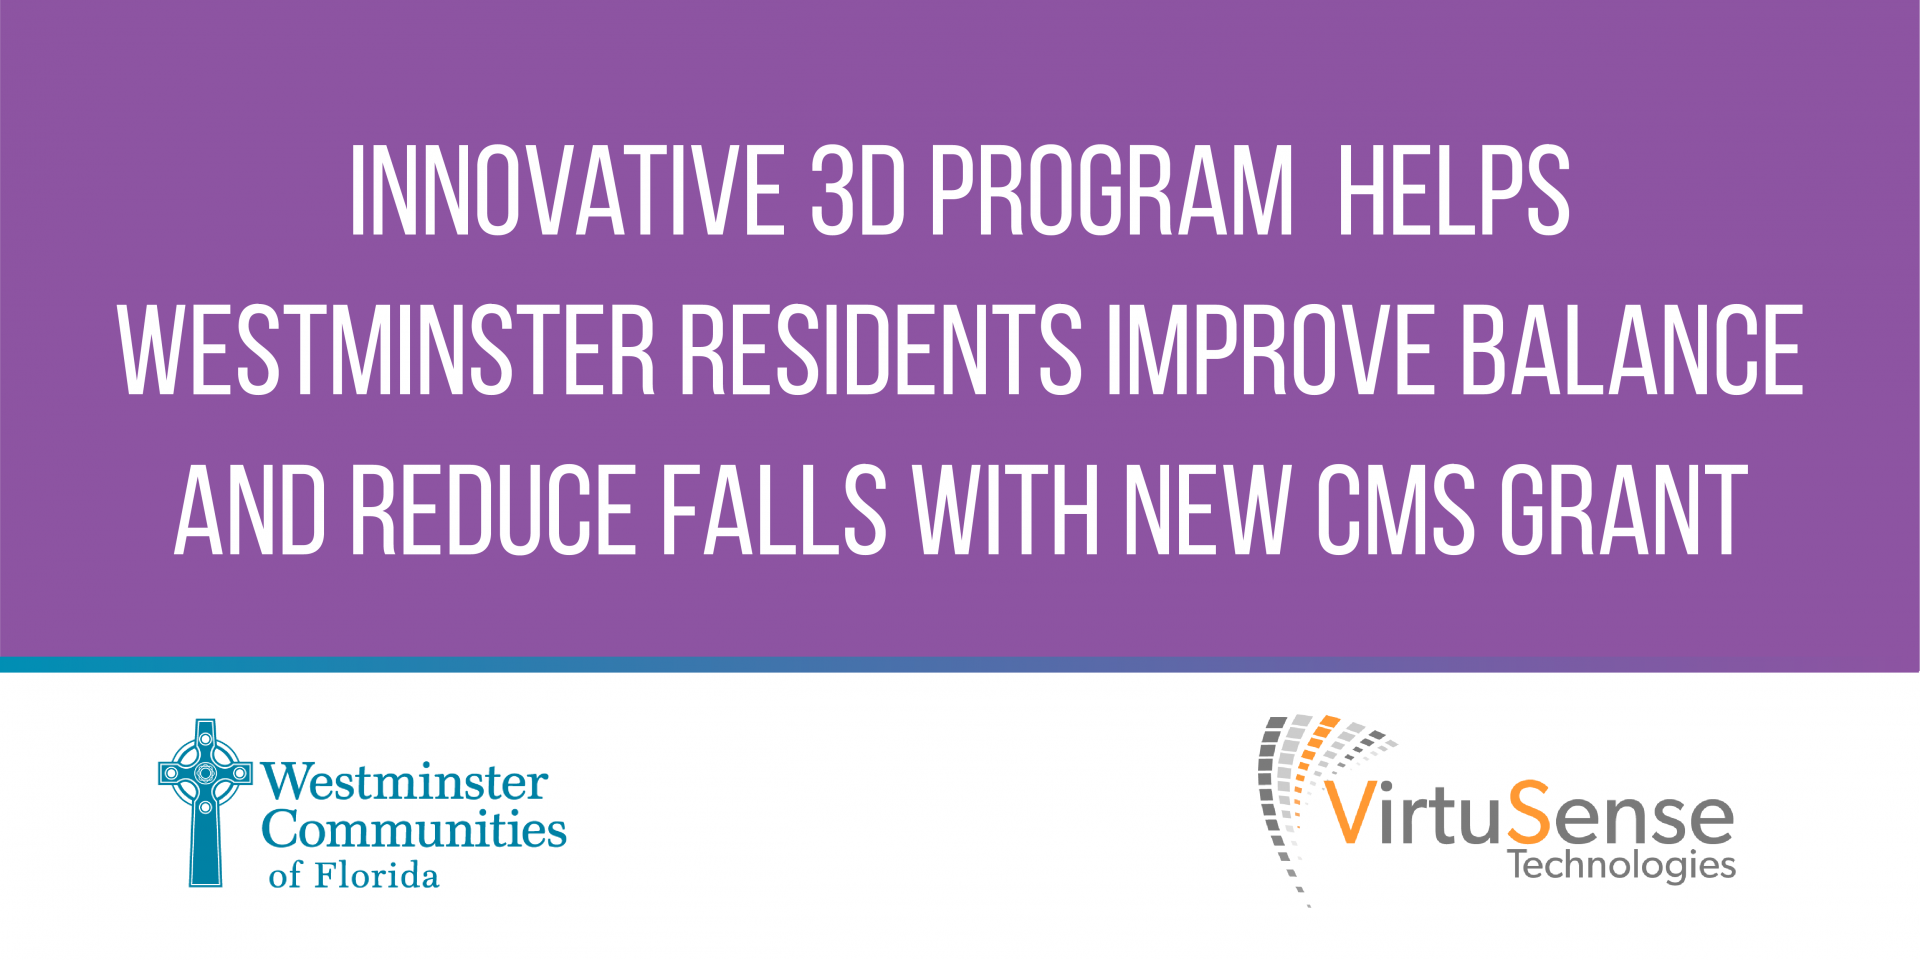 Innovative 3D Program Helps Westminster Residents Improve Balance and Reduce Falls With New CMS Grant